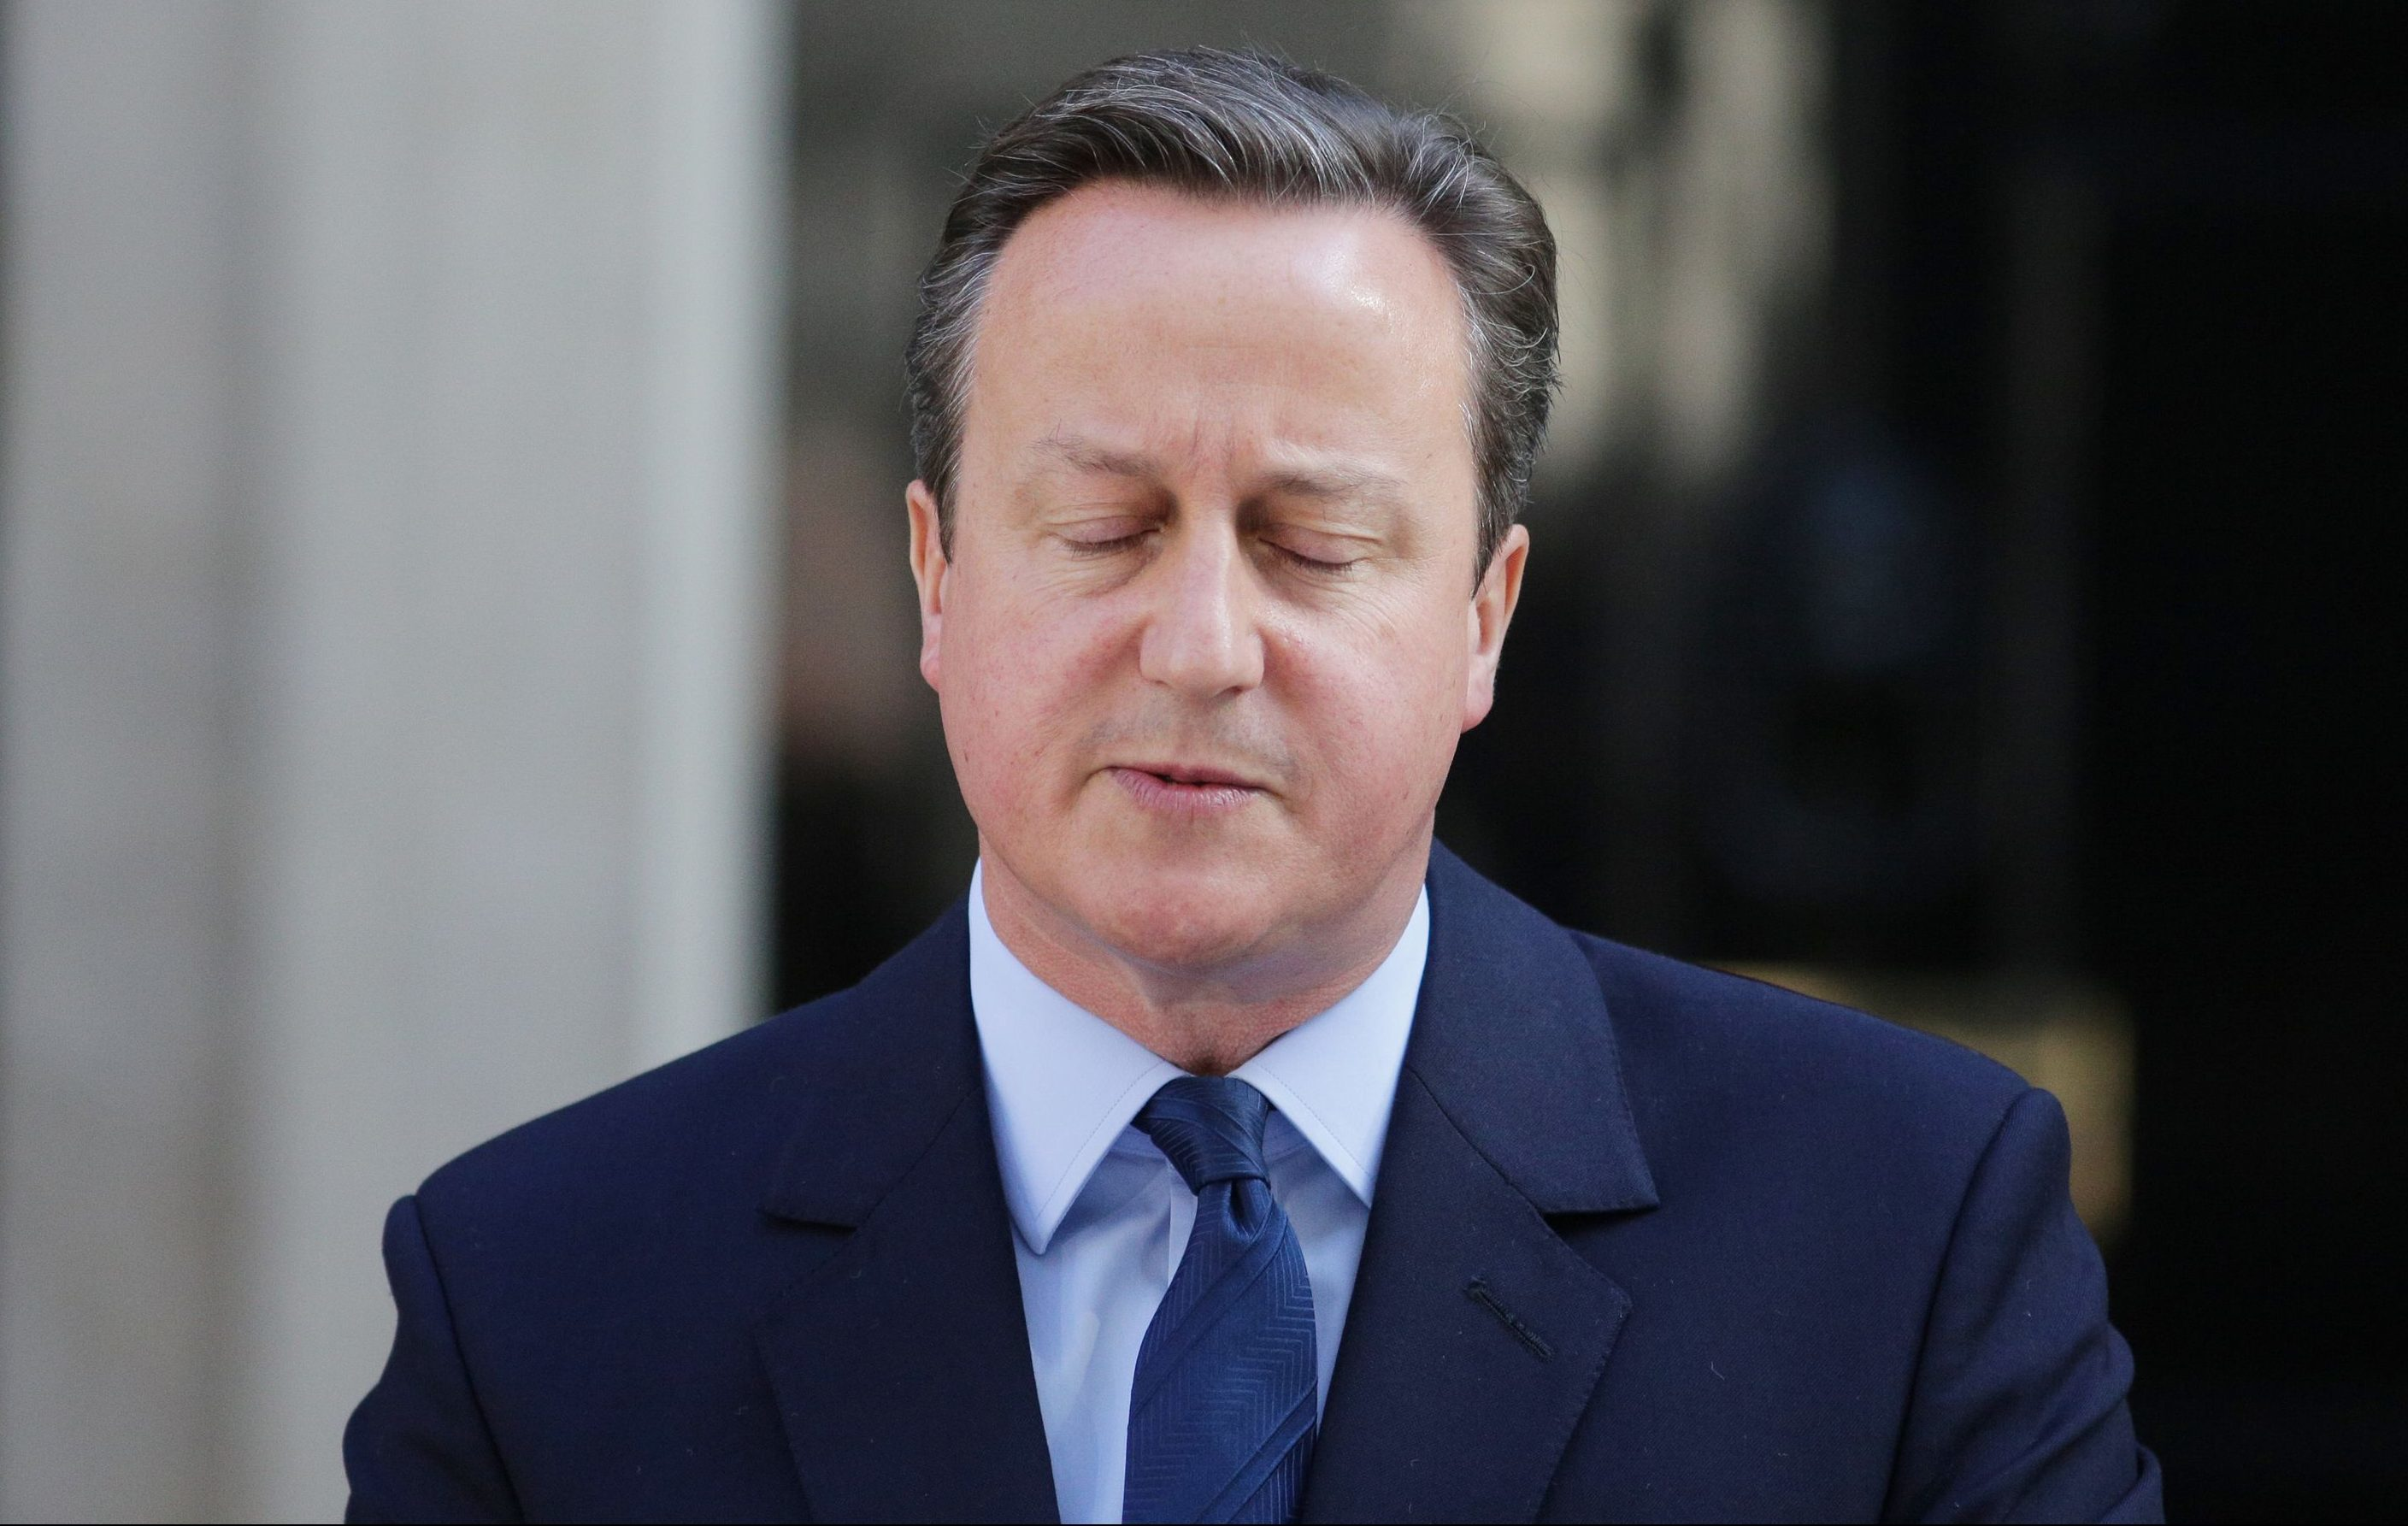 A song on his lips — David Cameron.